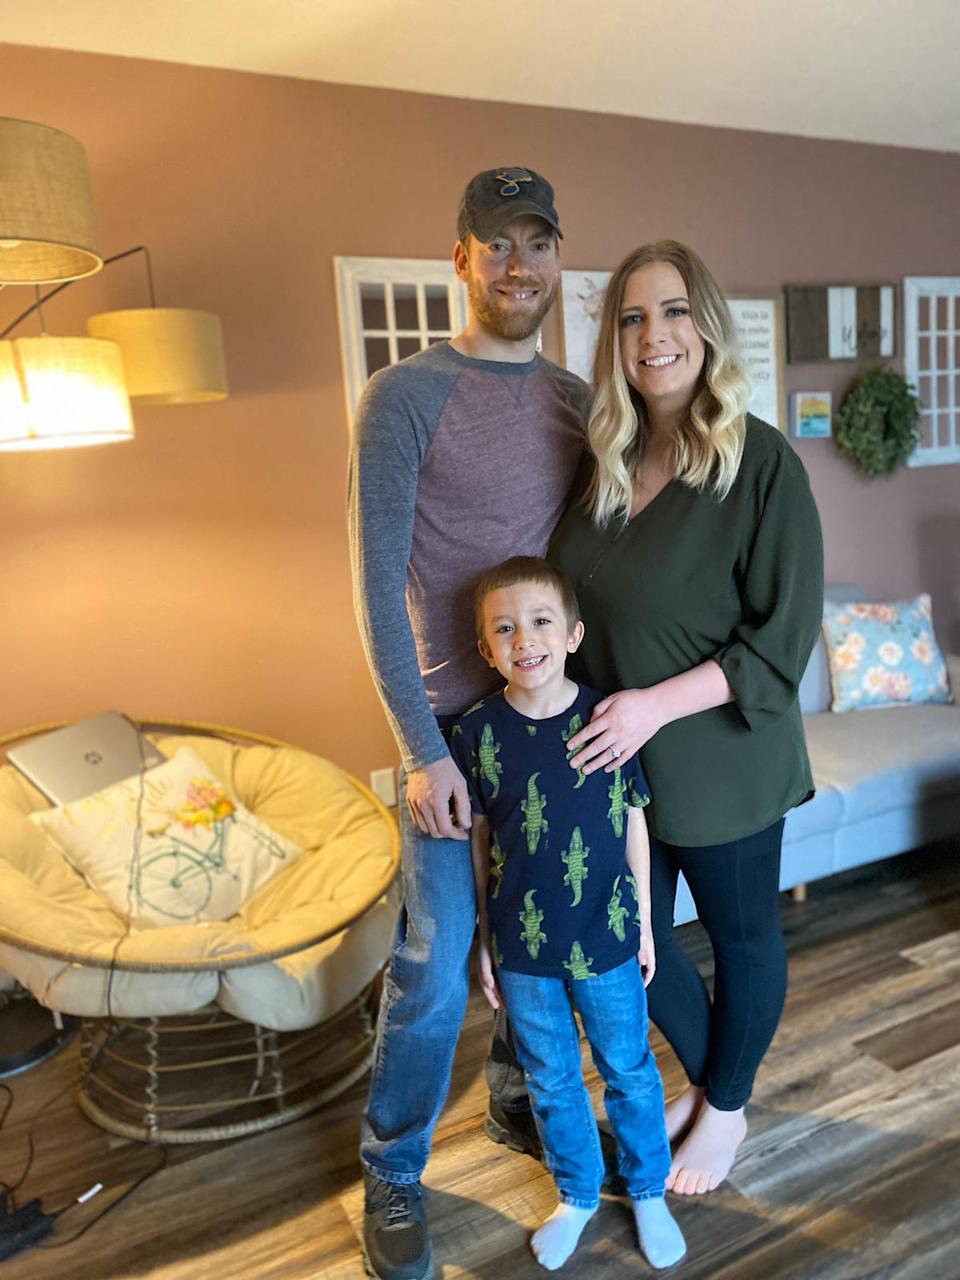 Cody and Ashley Wells had been planning to elope for a Las Vegas nuptials with their young son (PA)